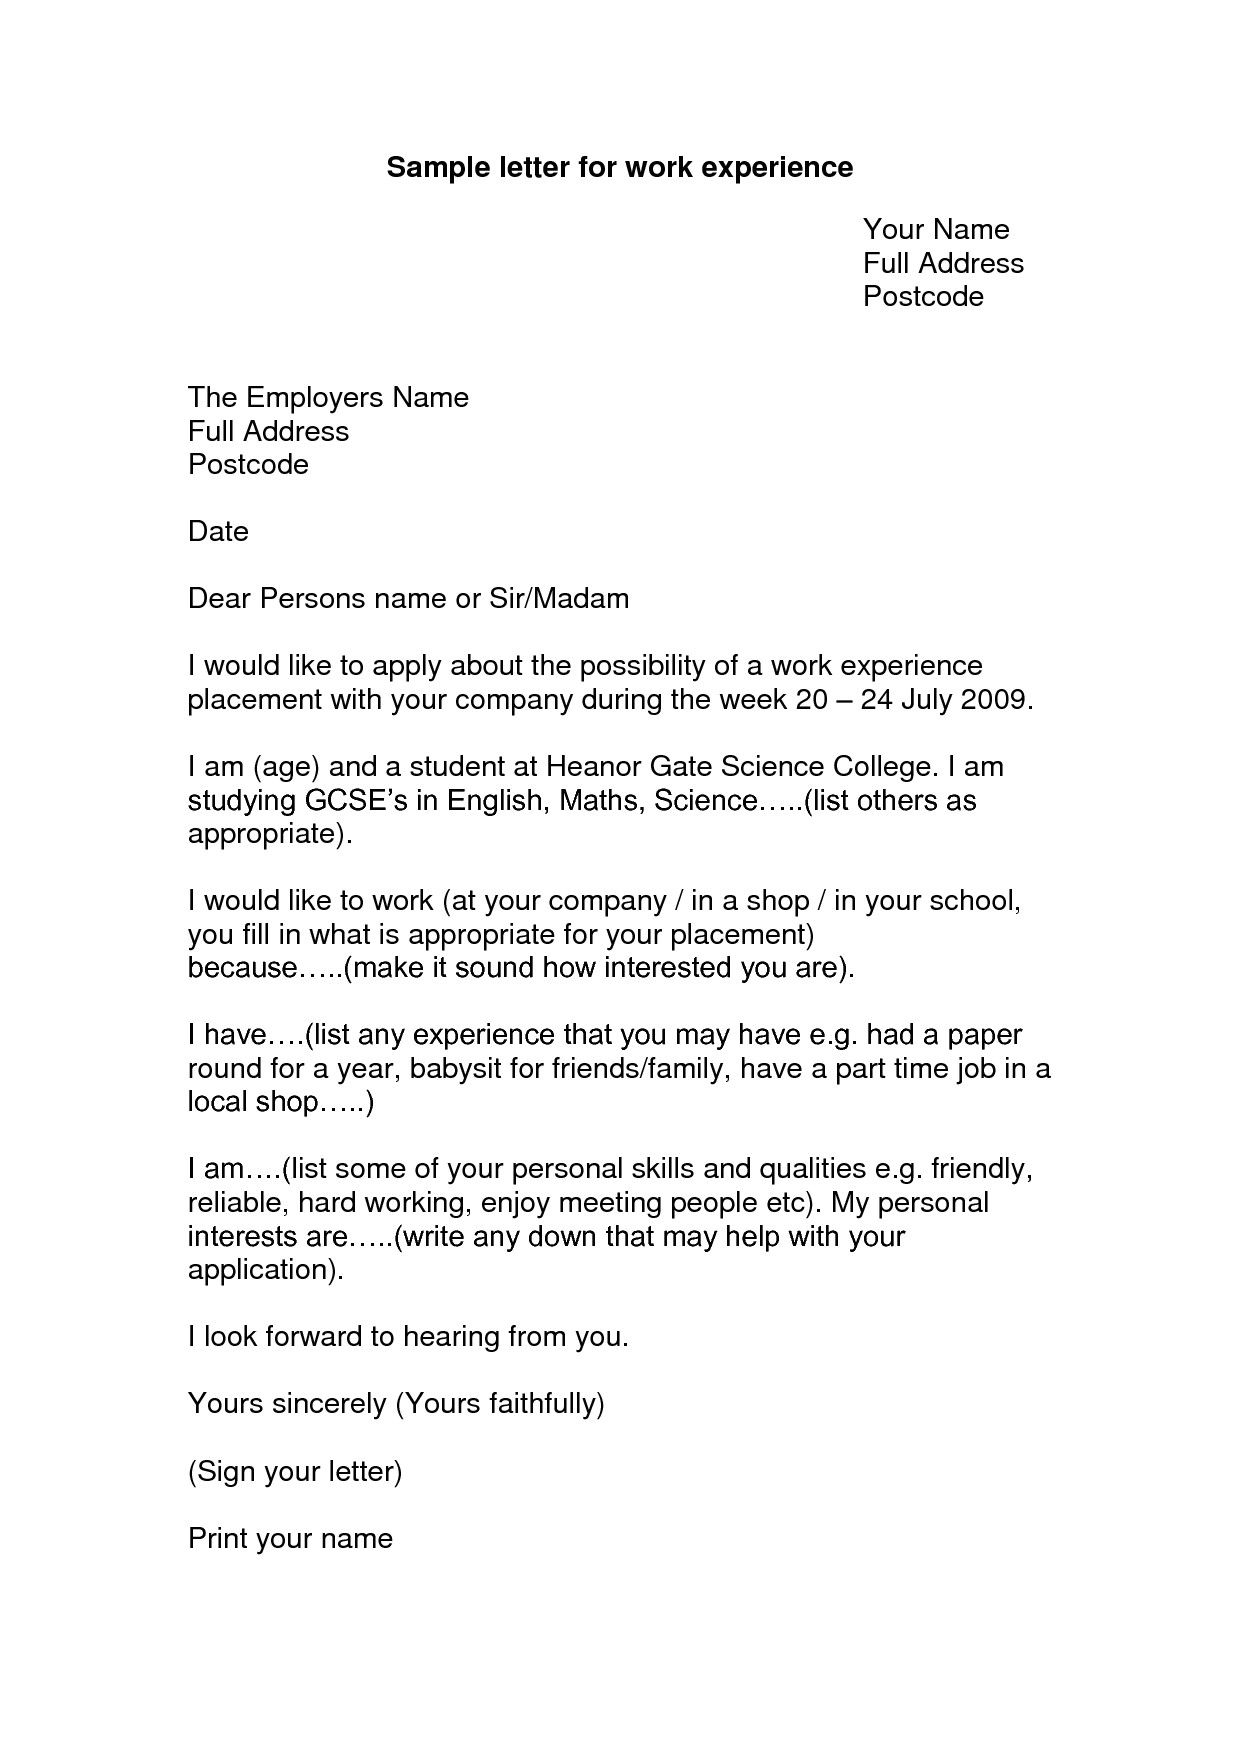 Cover Letter Looking for Work Work Experience Letter Example Google Search Looking